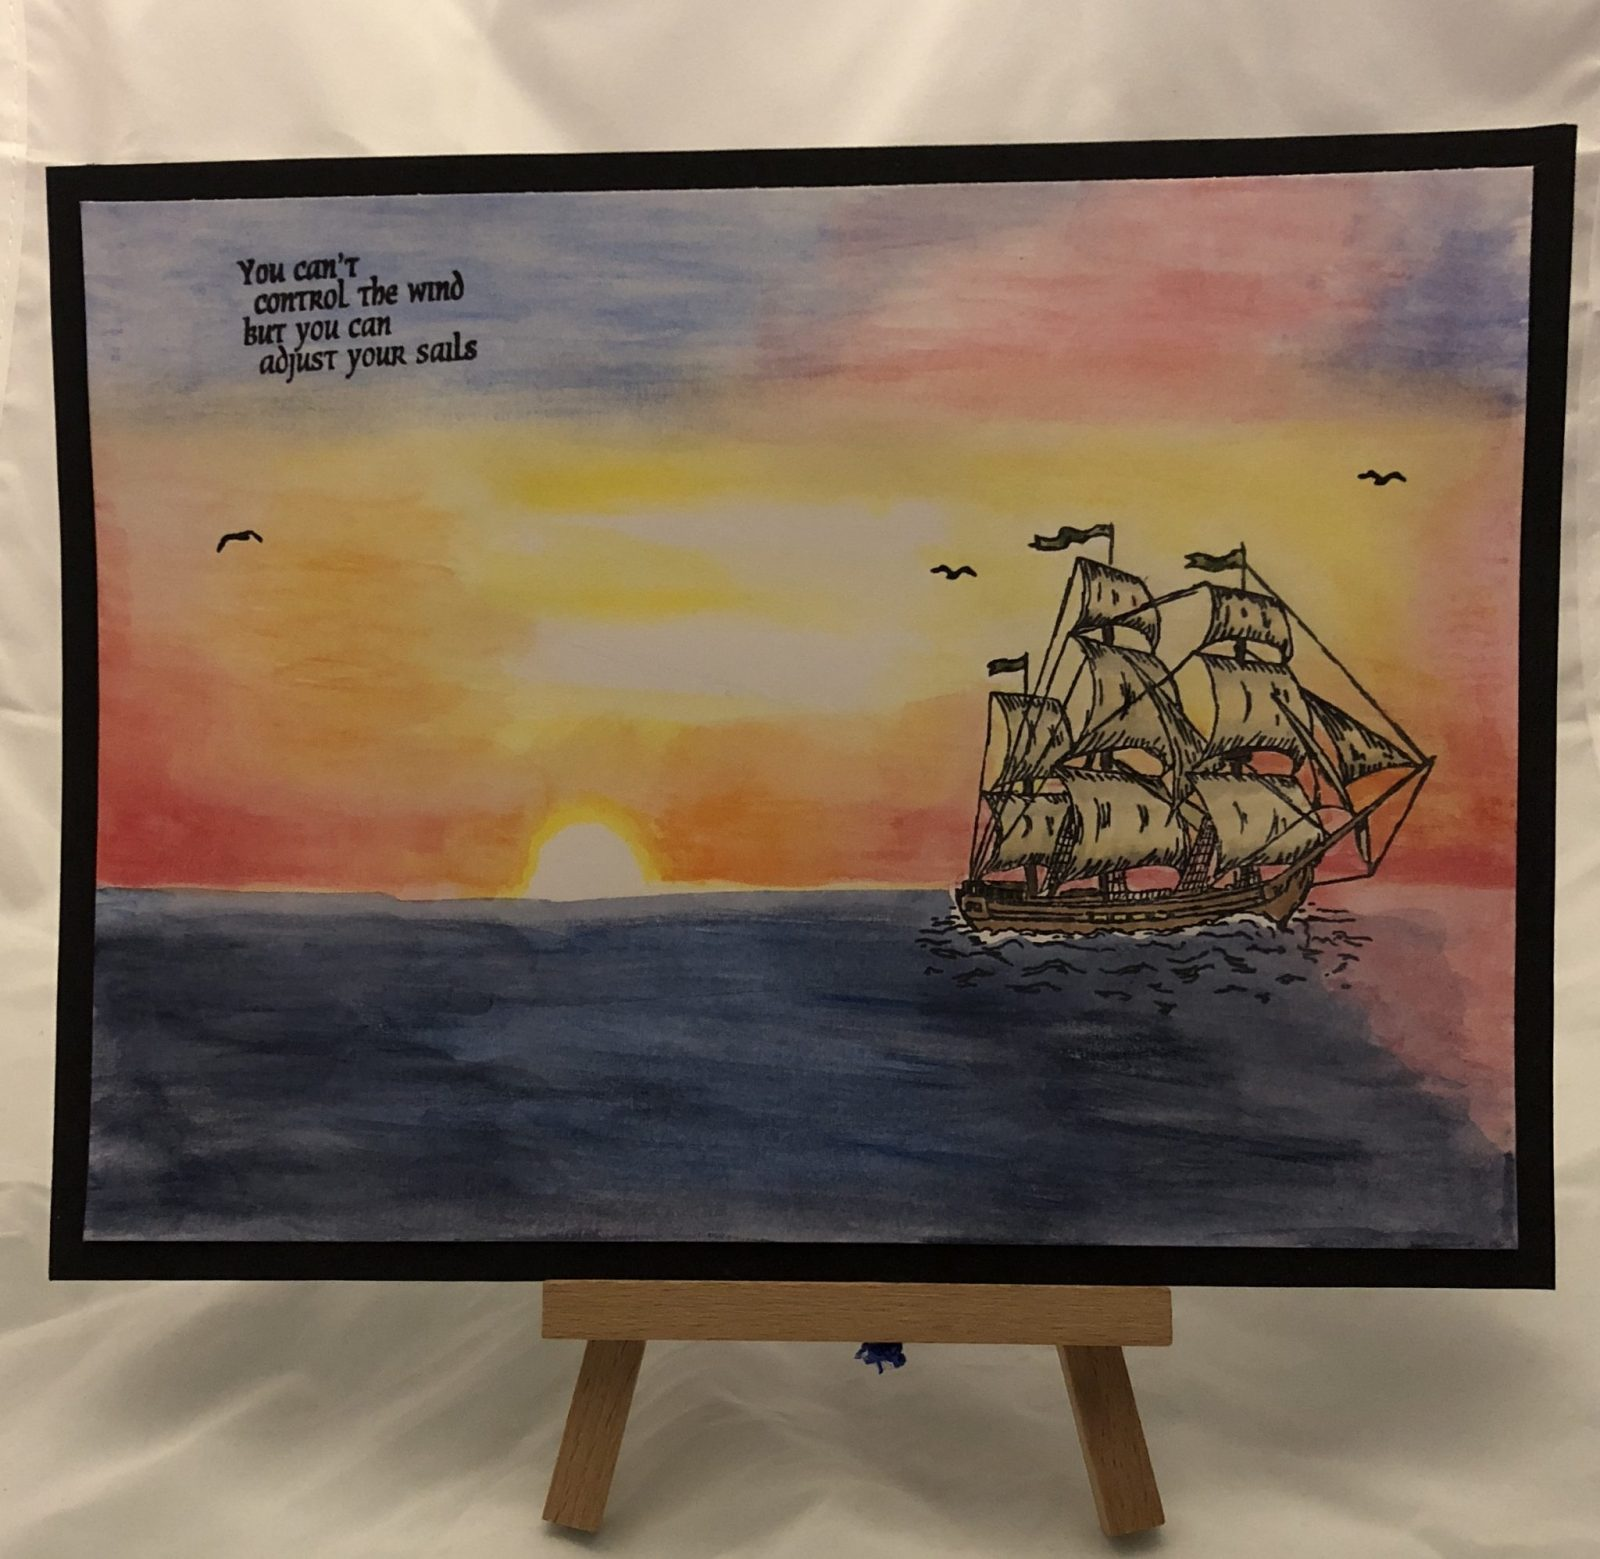 Living Creatively with Fibro | The completed watercolour picture with the birds and the sentiment You can't control the wind but you can adjust your sails